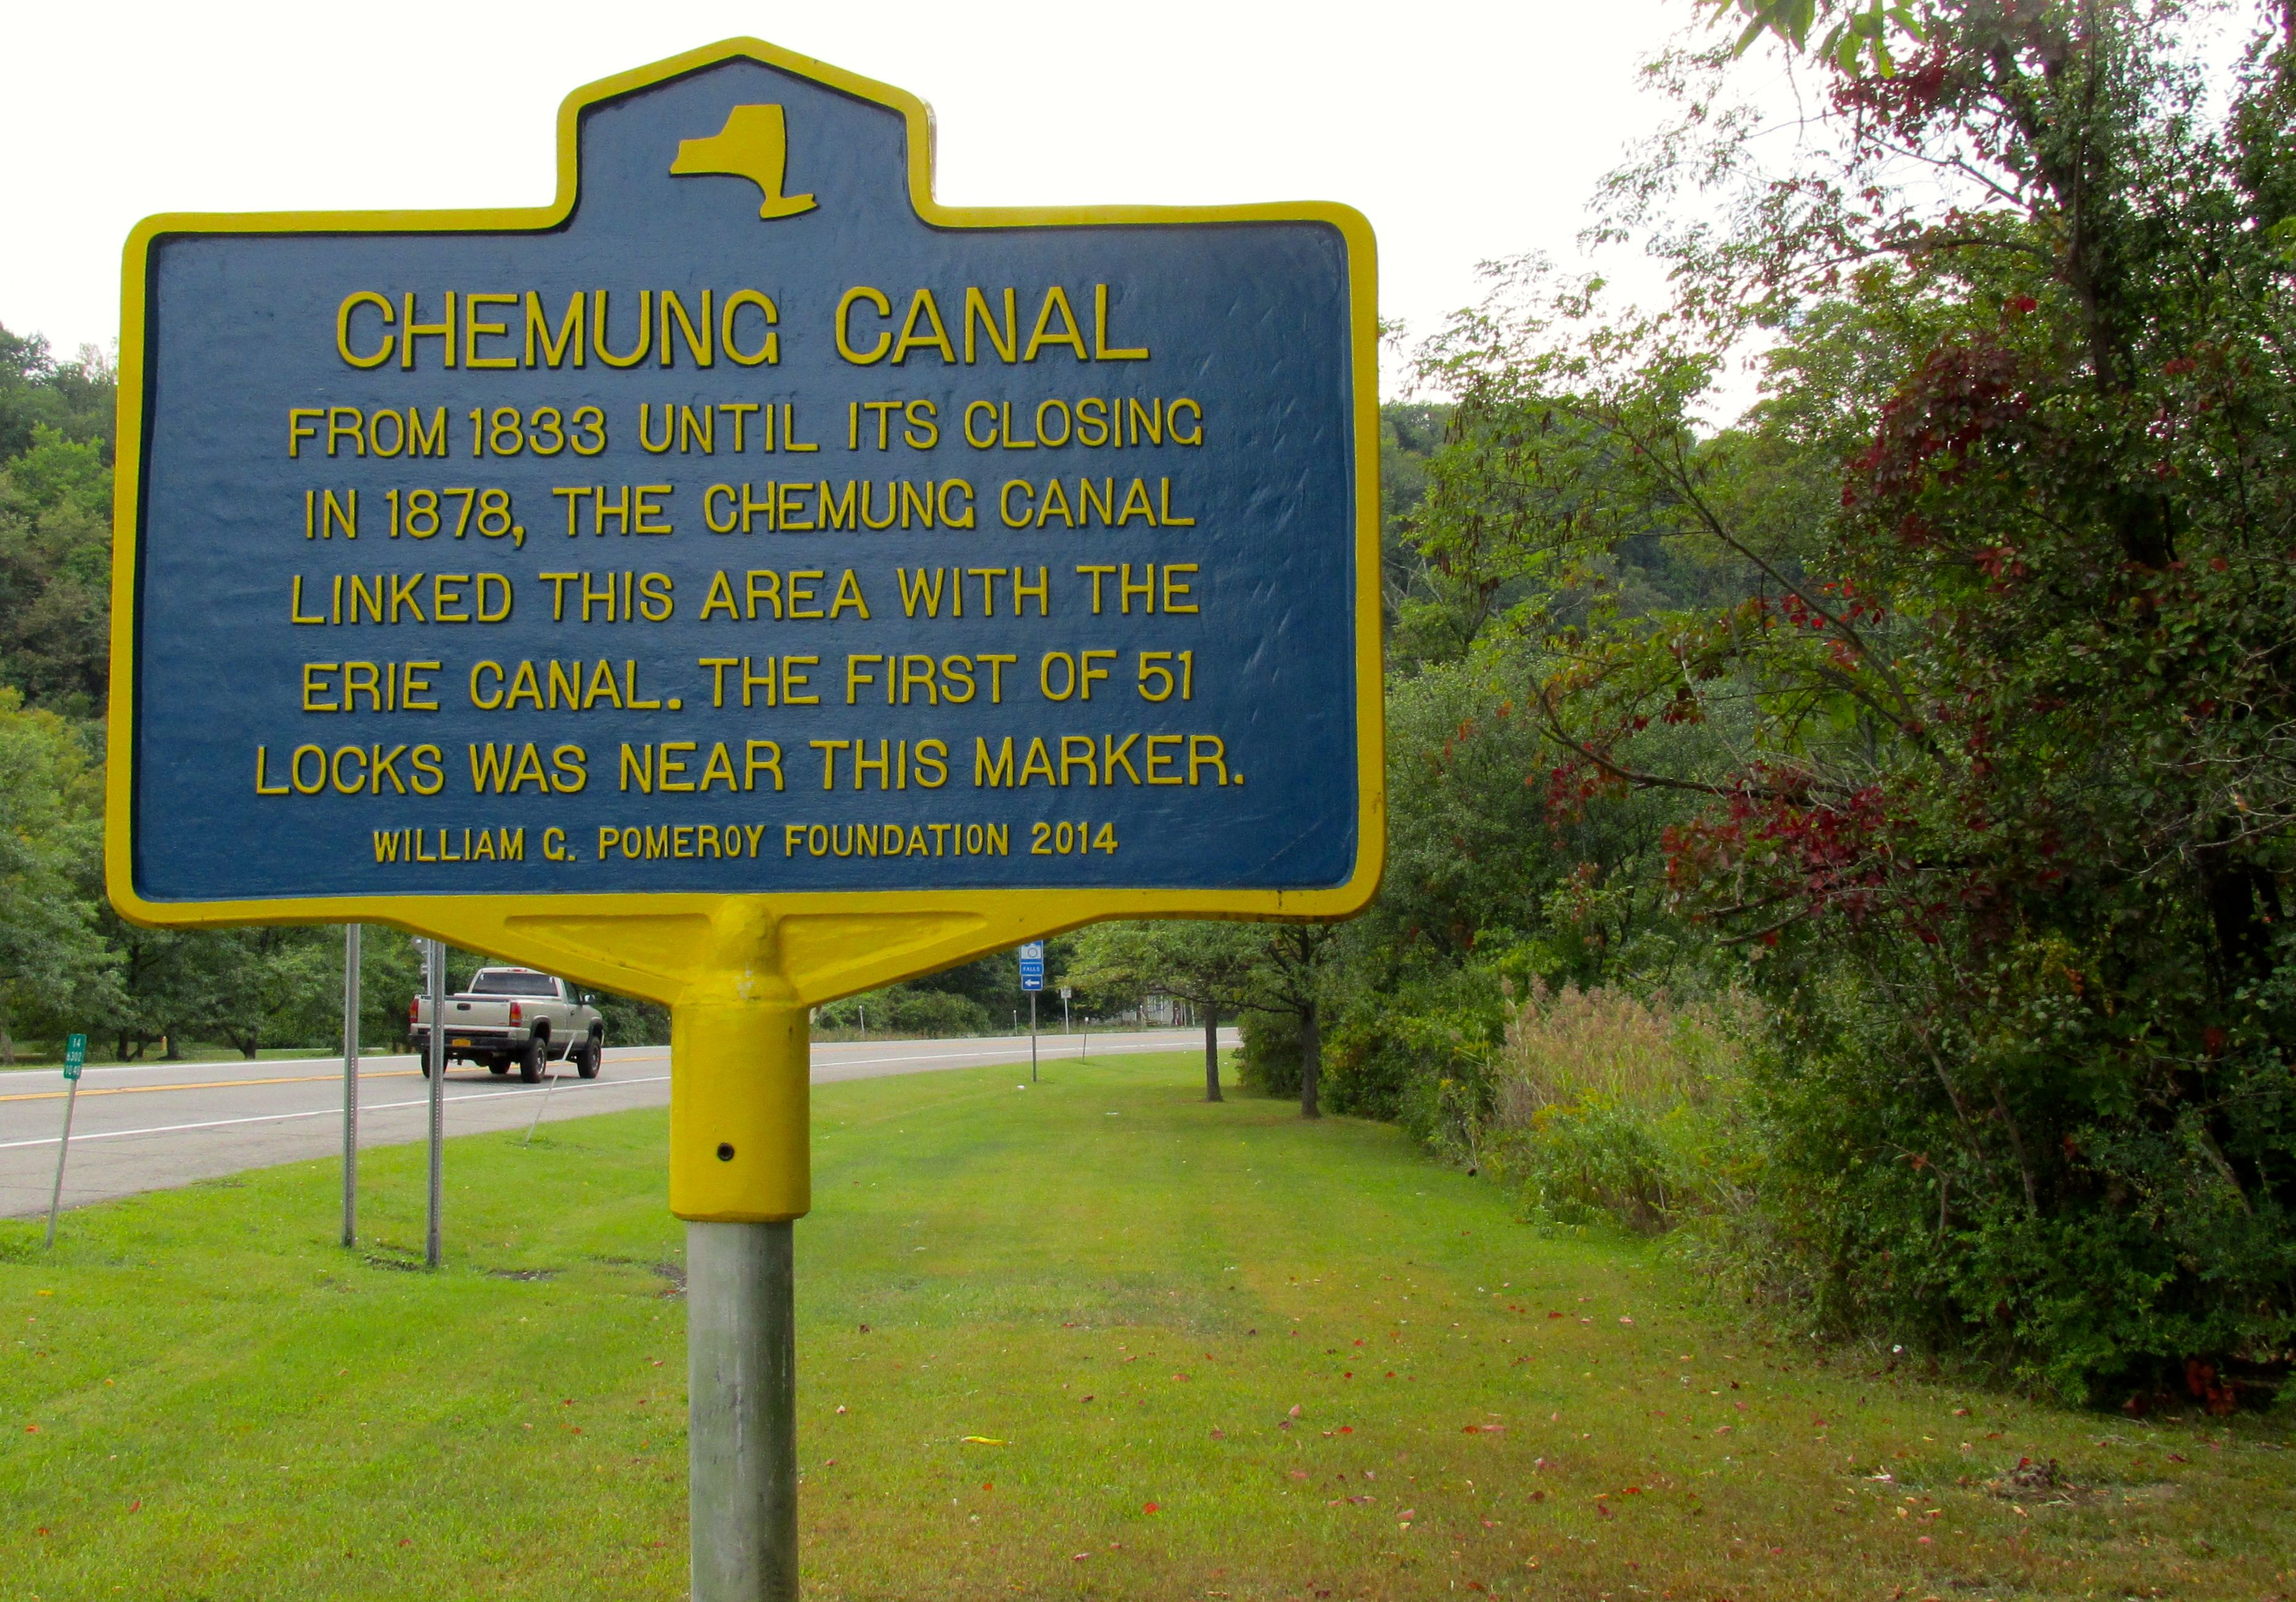 Chemung Canal Marker